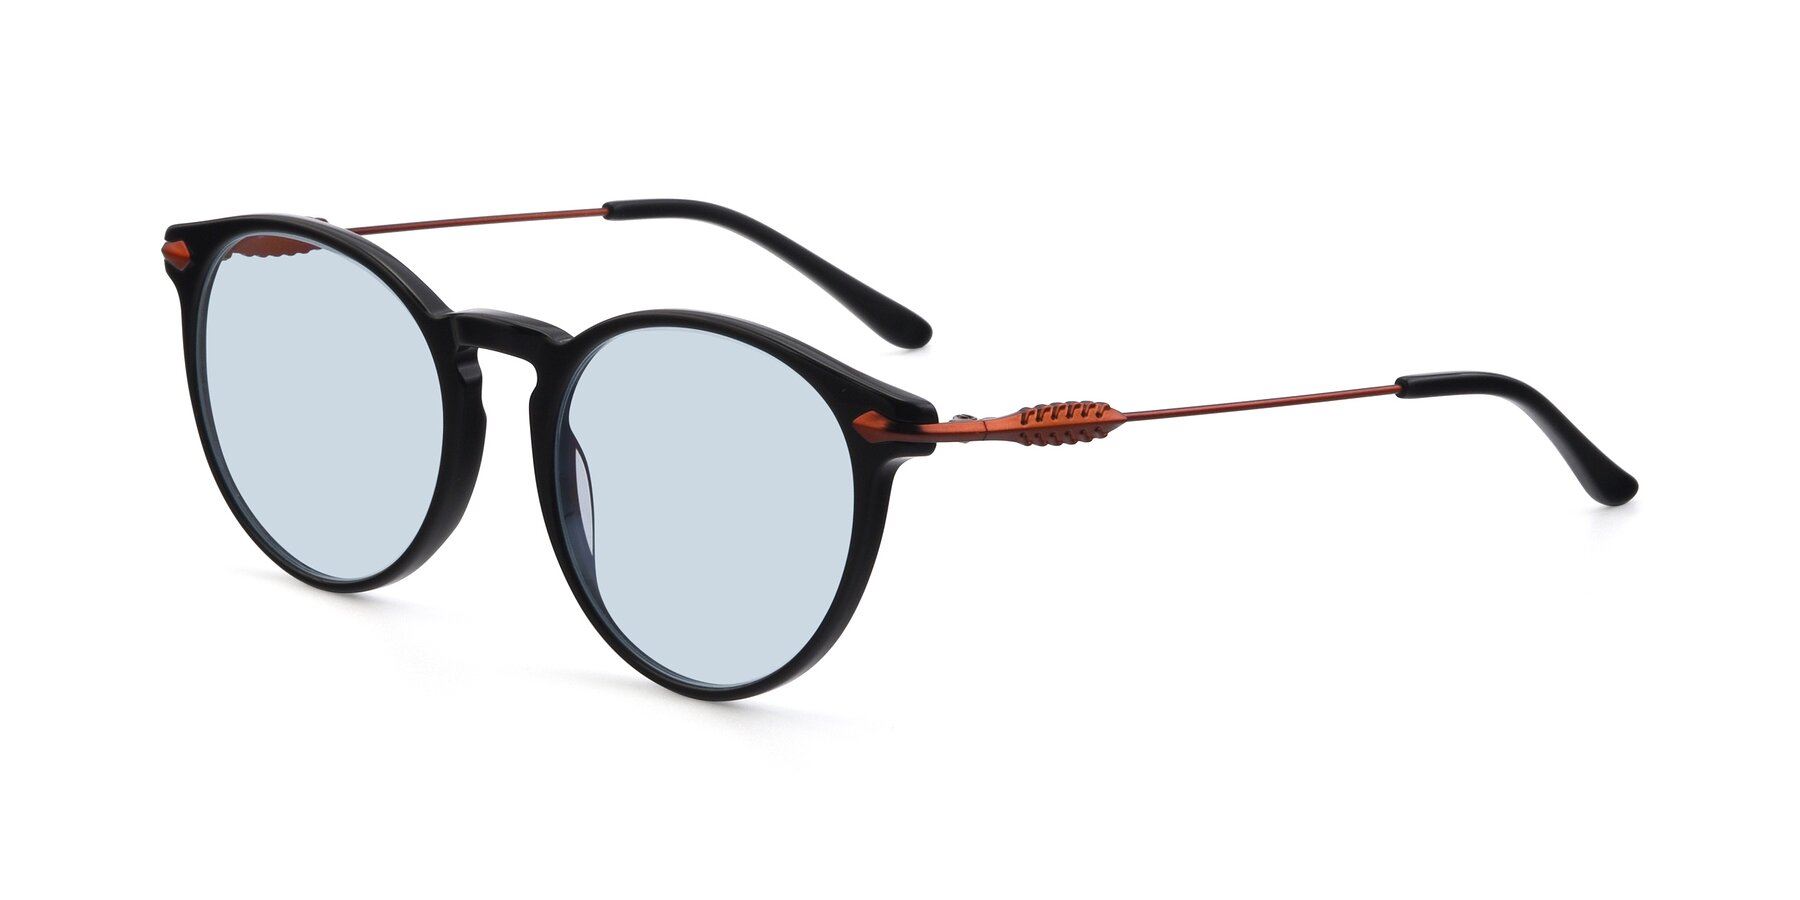 Angle of 17660 in Black with Light Blue Tinted Lenses